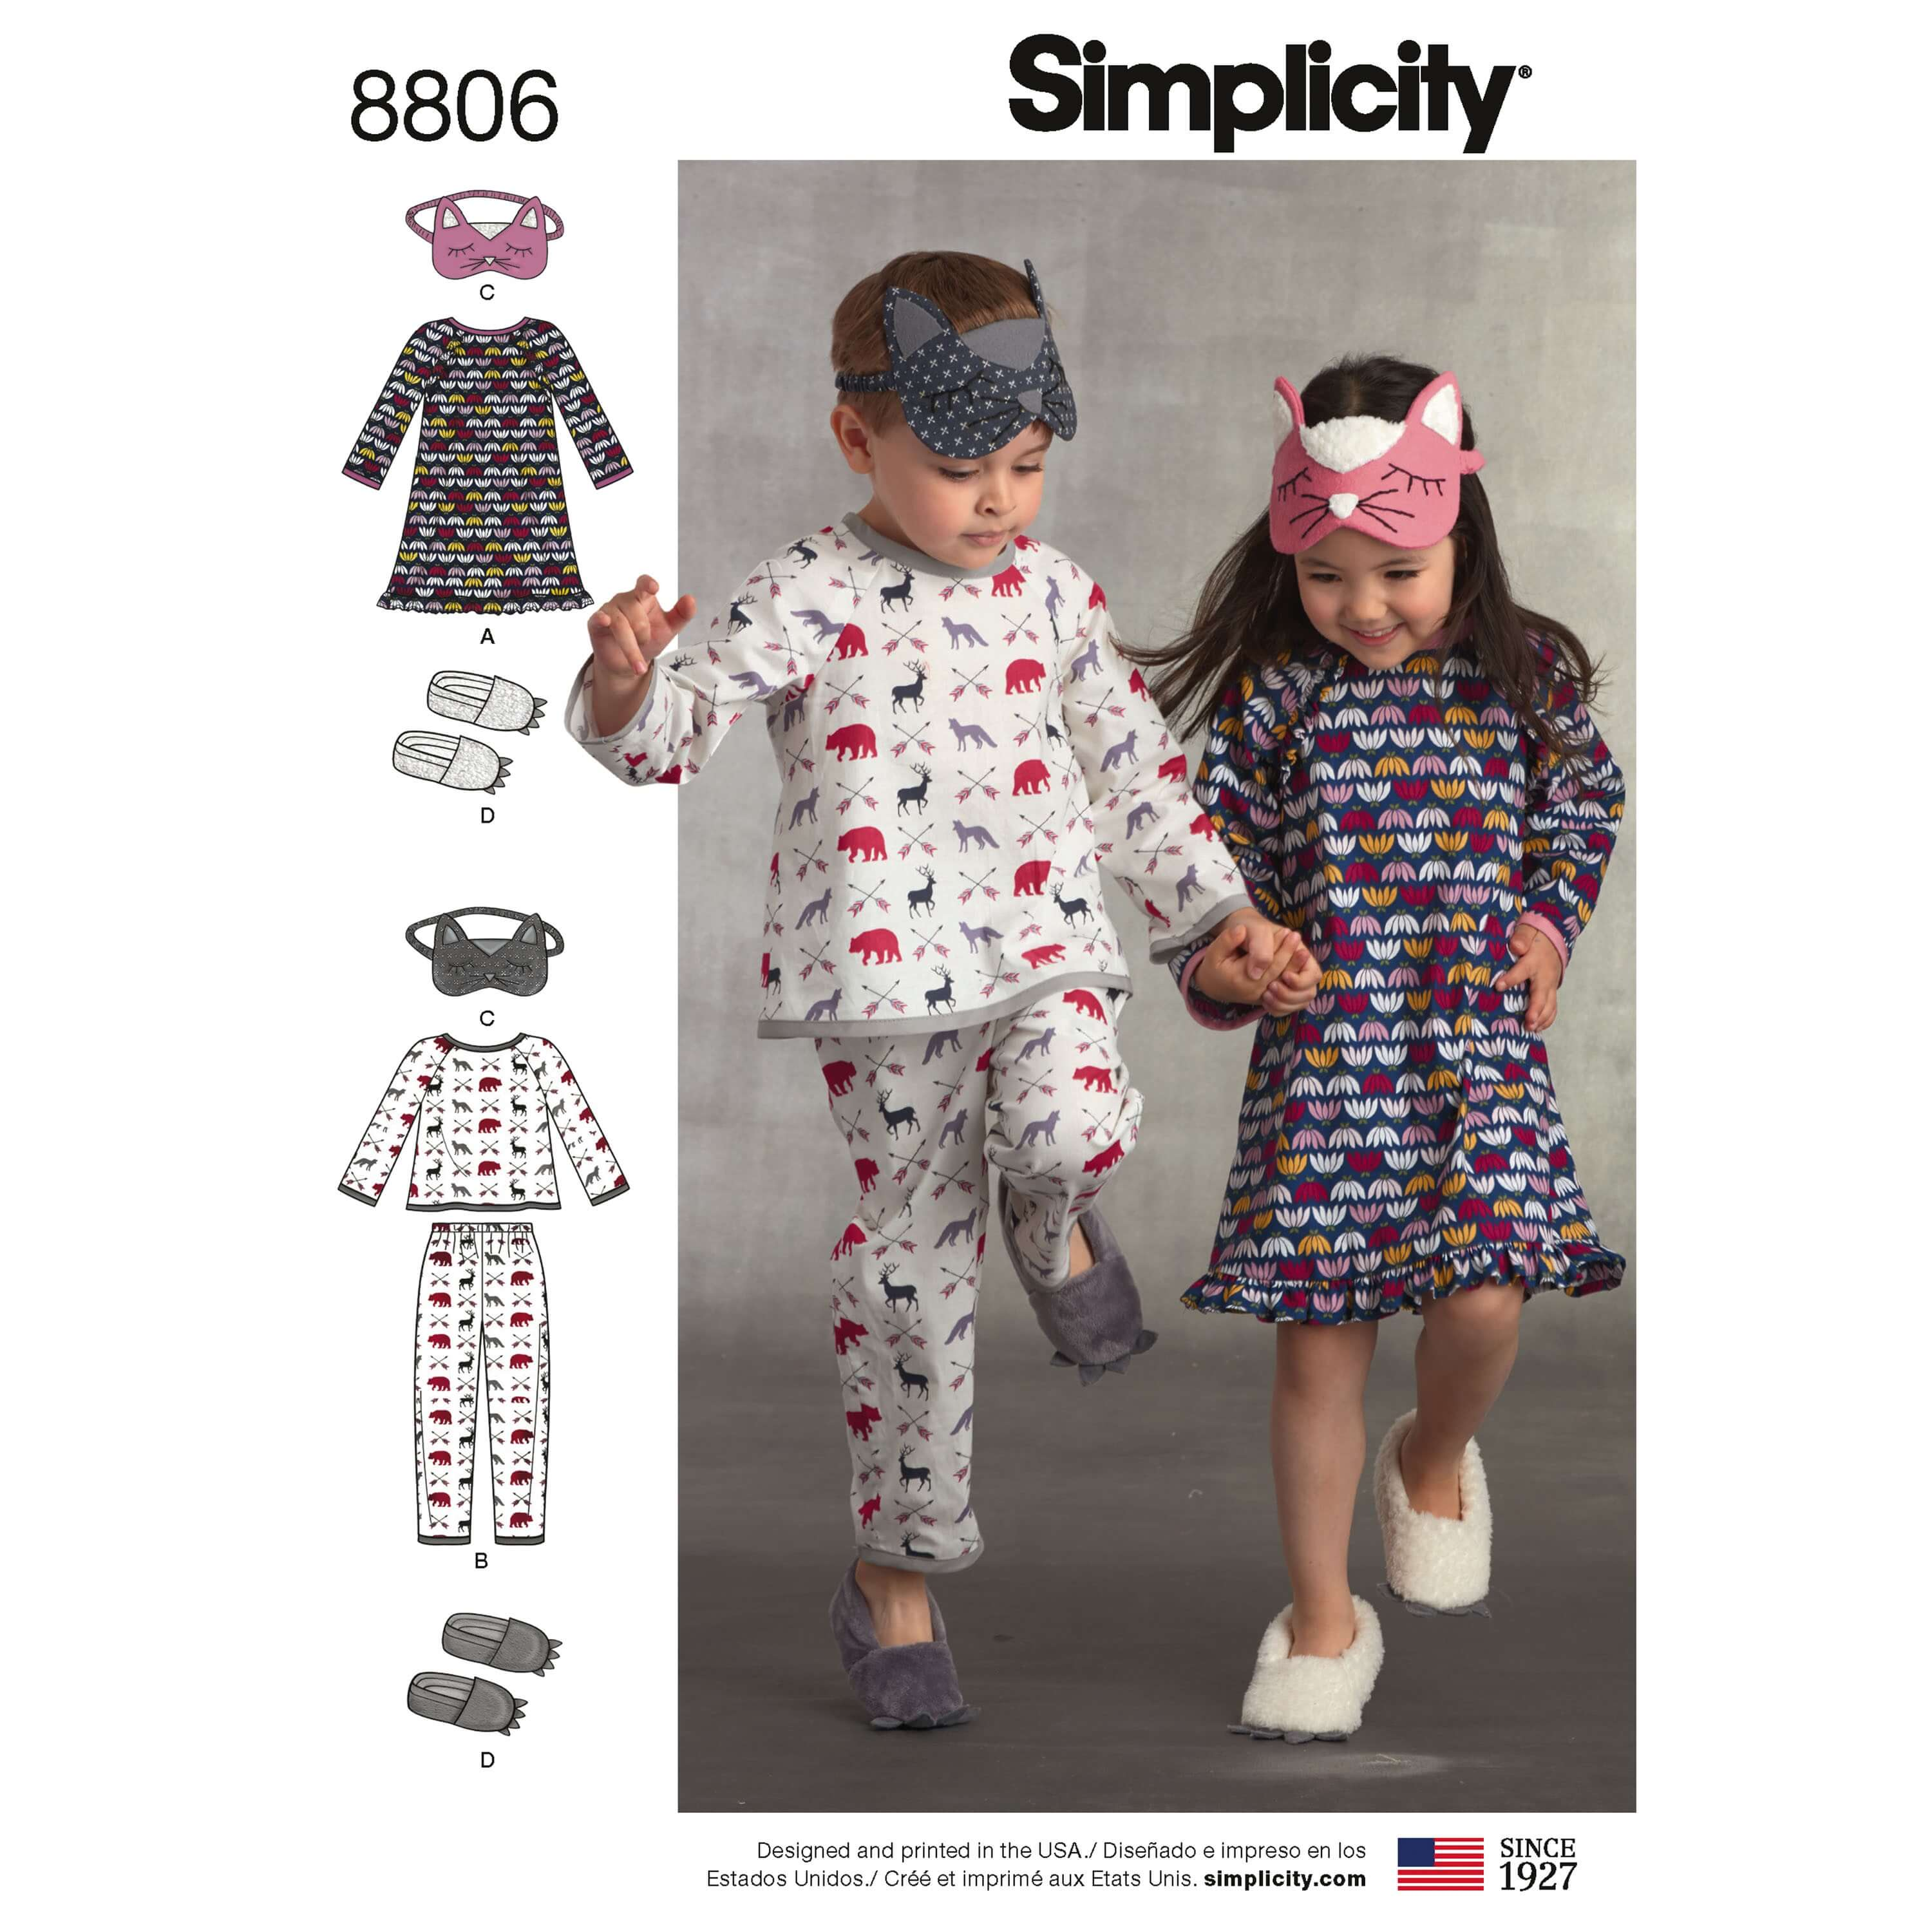 Simplicity 8806 Child Dress, Top, Trousers, Eye Mask and Slippers Sewing Pattern